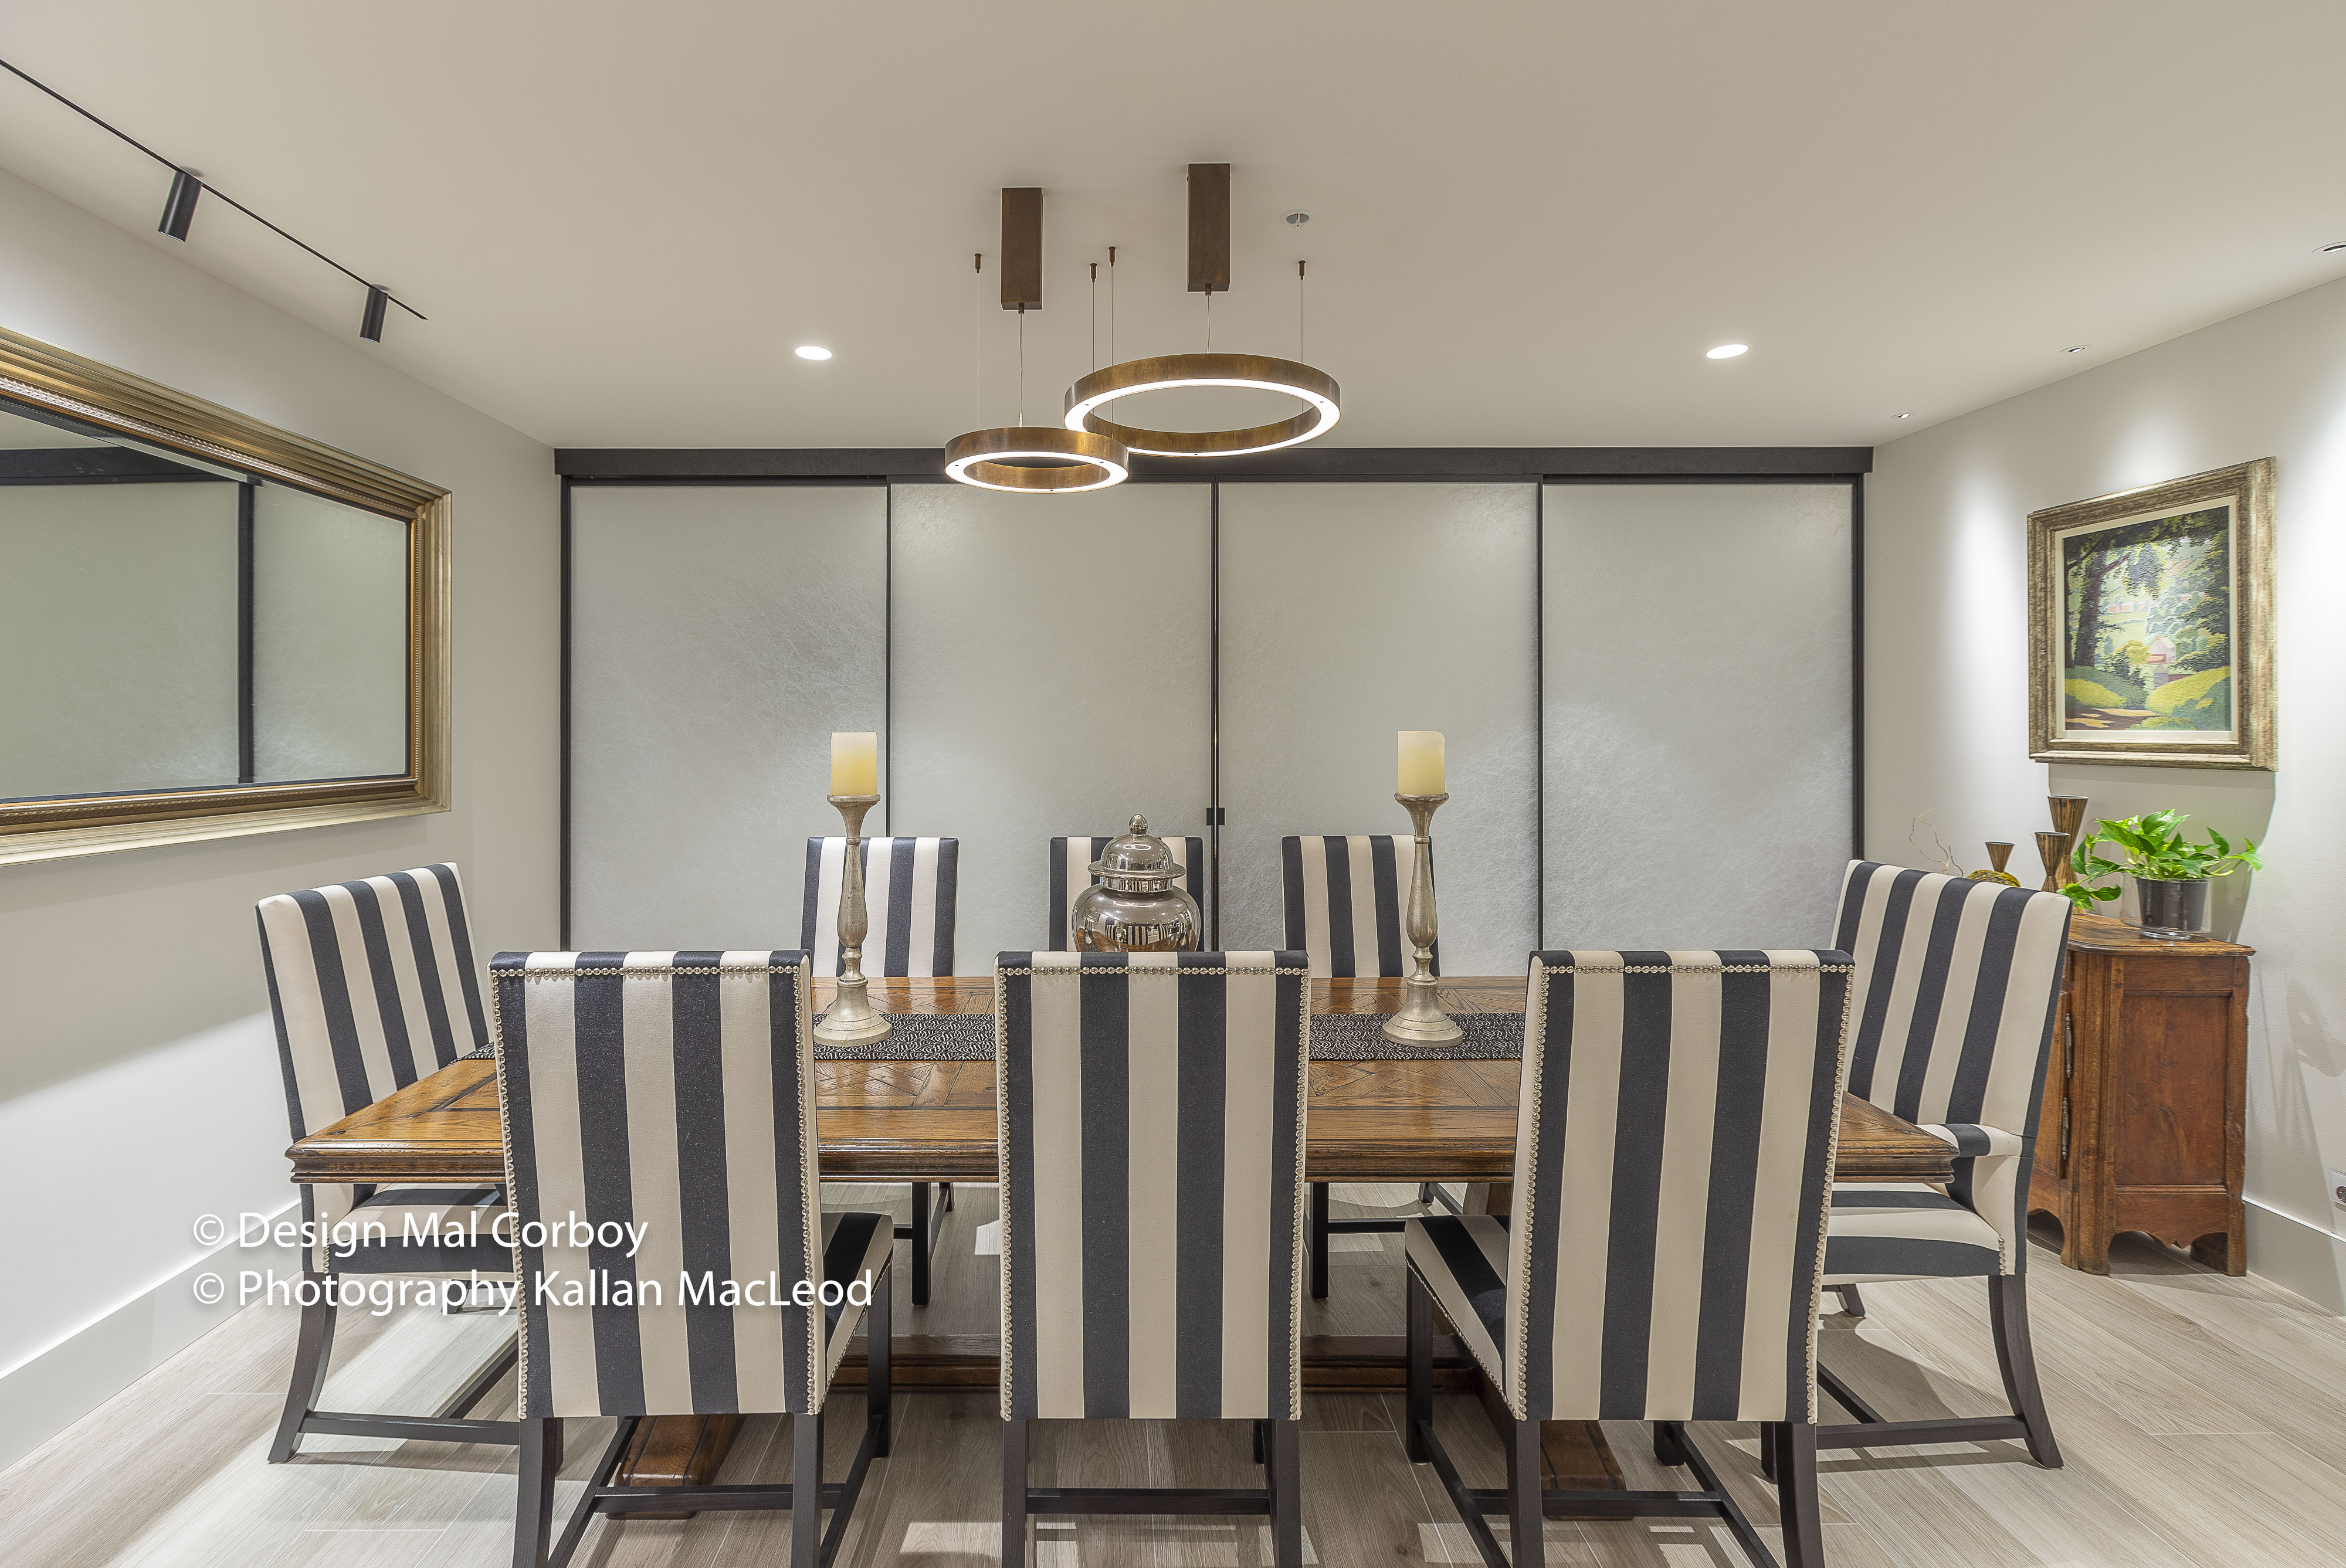 St Heliers - Interiors